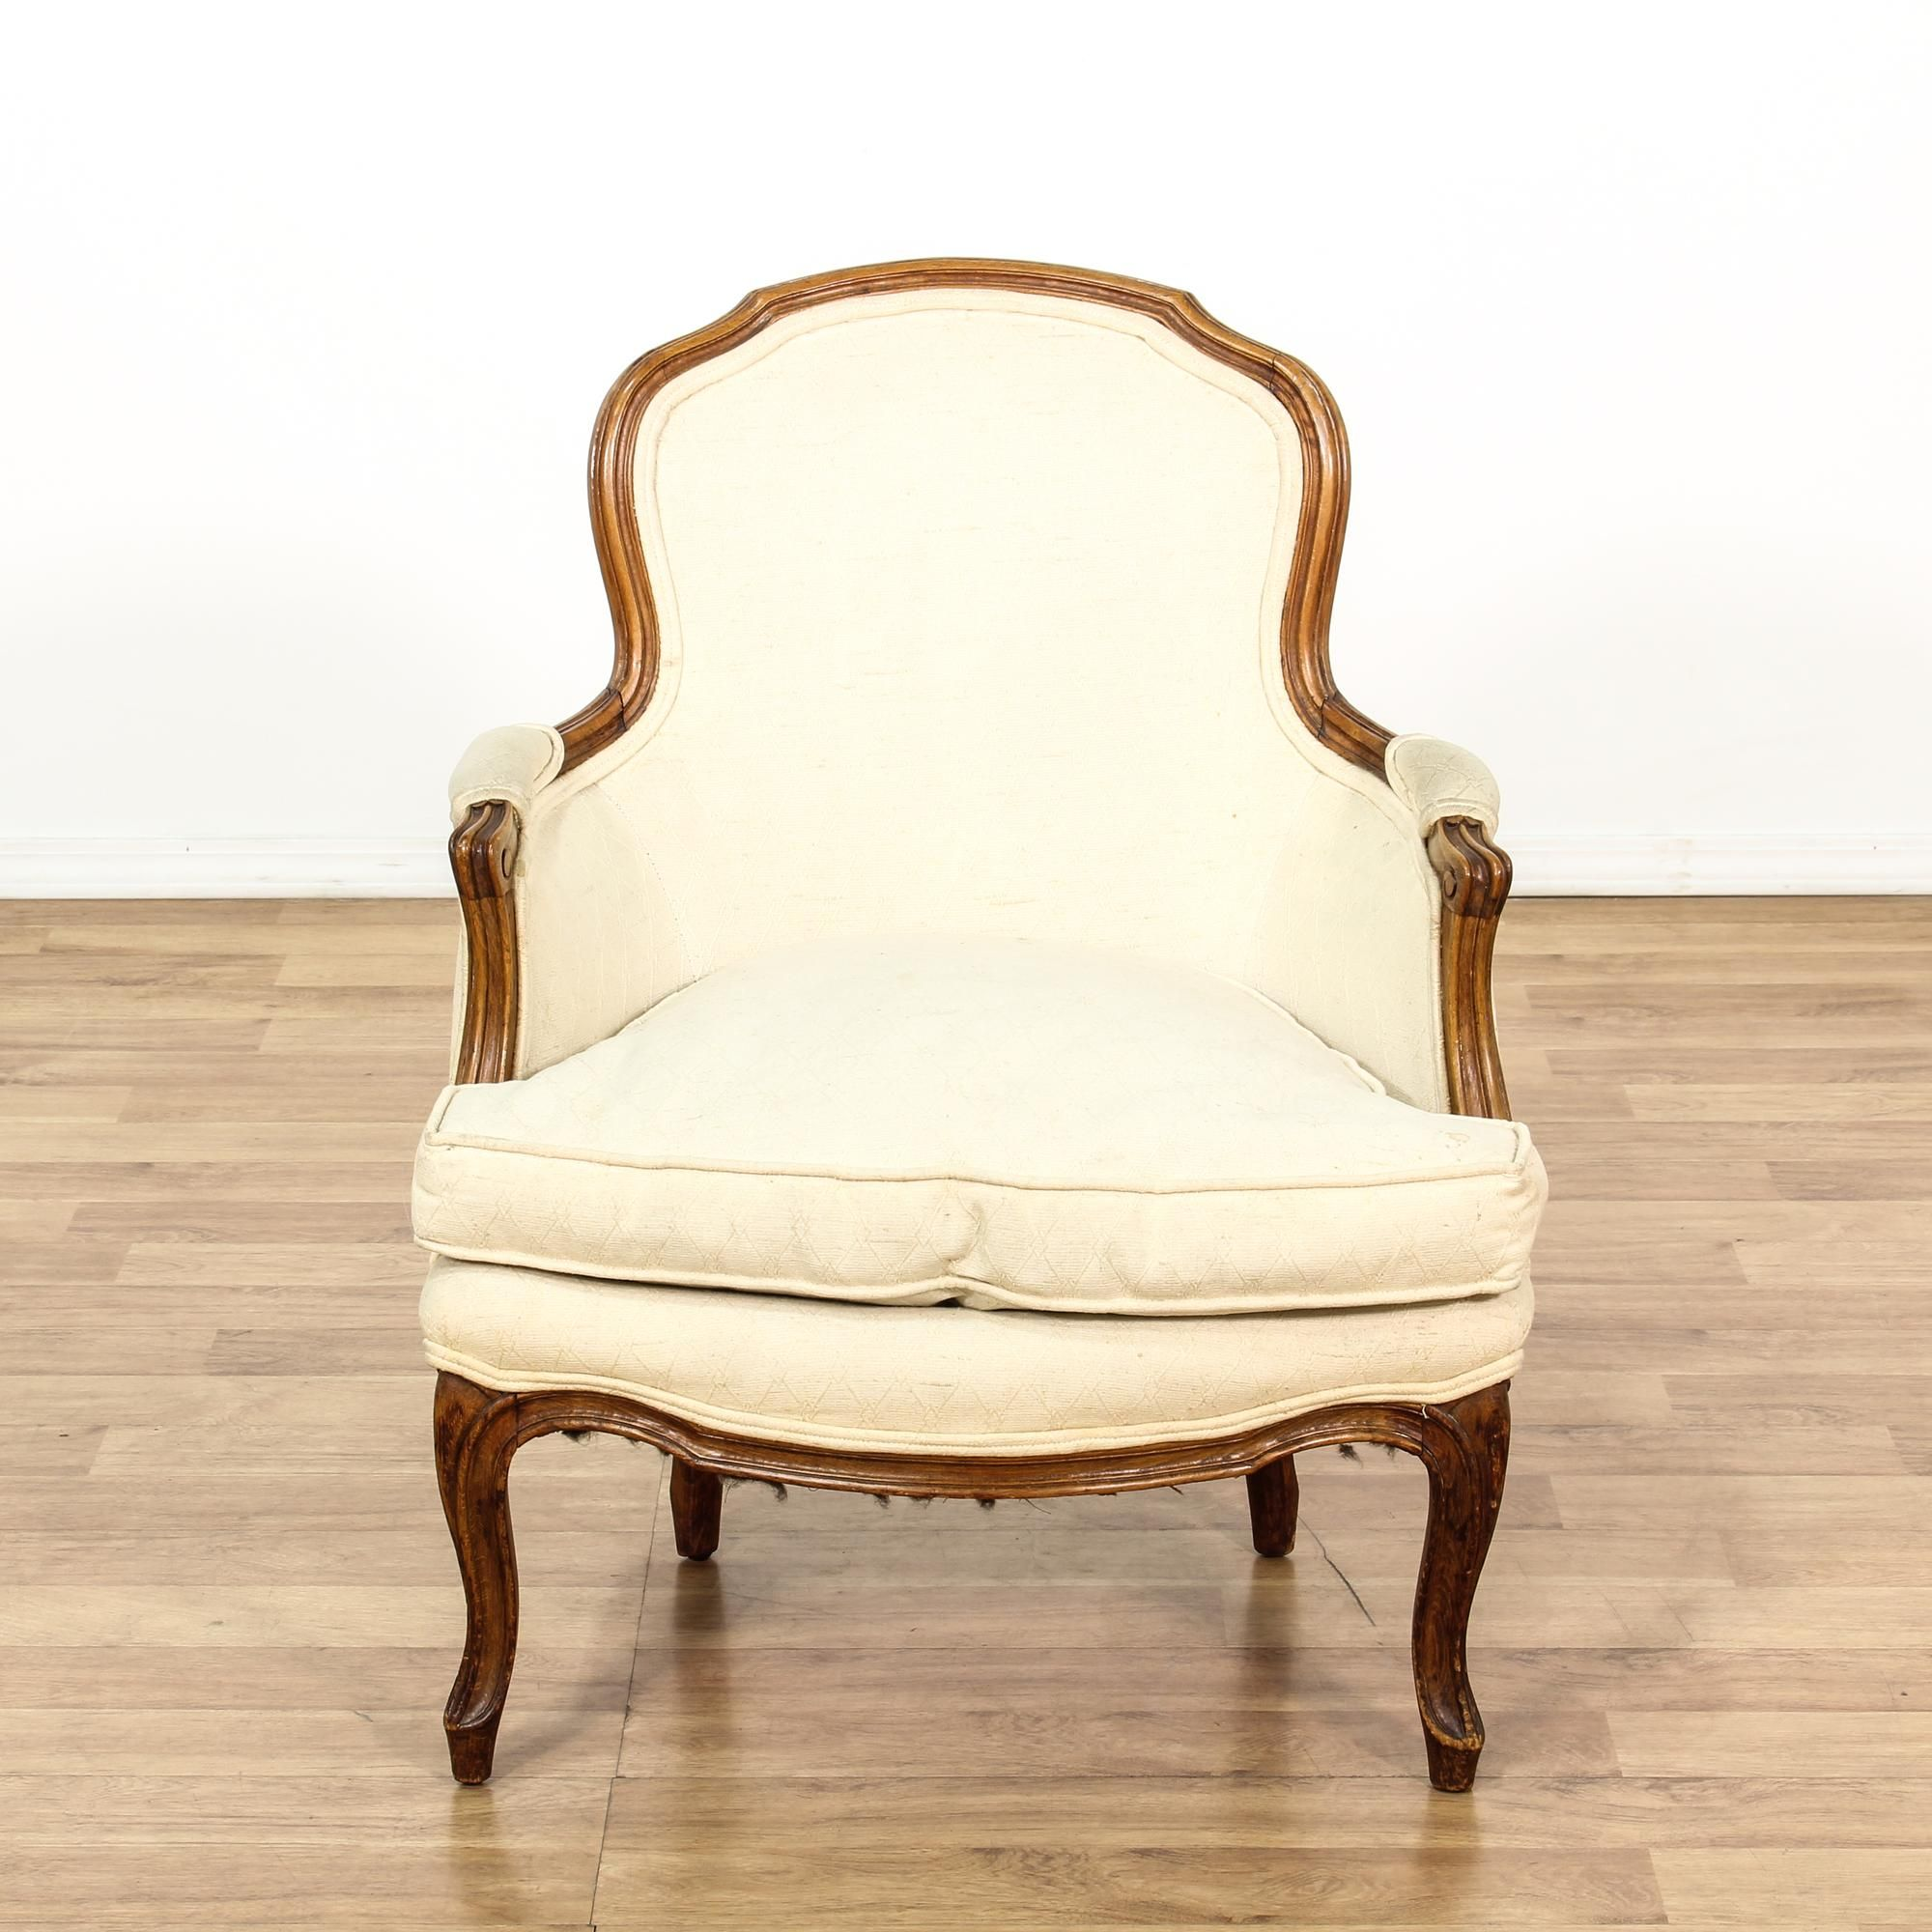 This Louis XV style bergere chair is upholstered in an off white